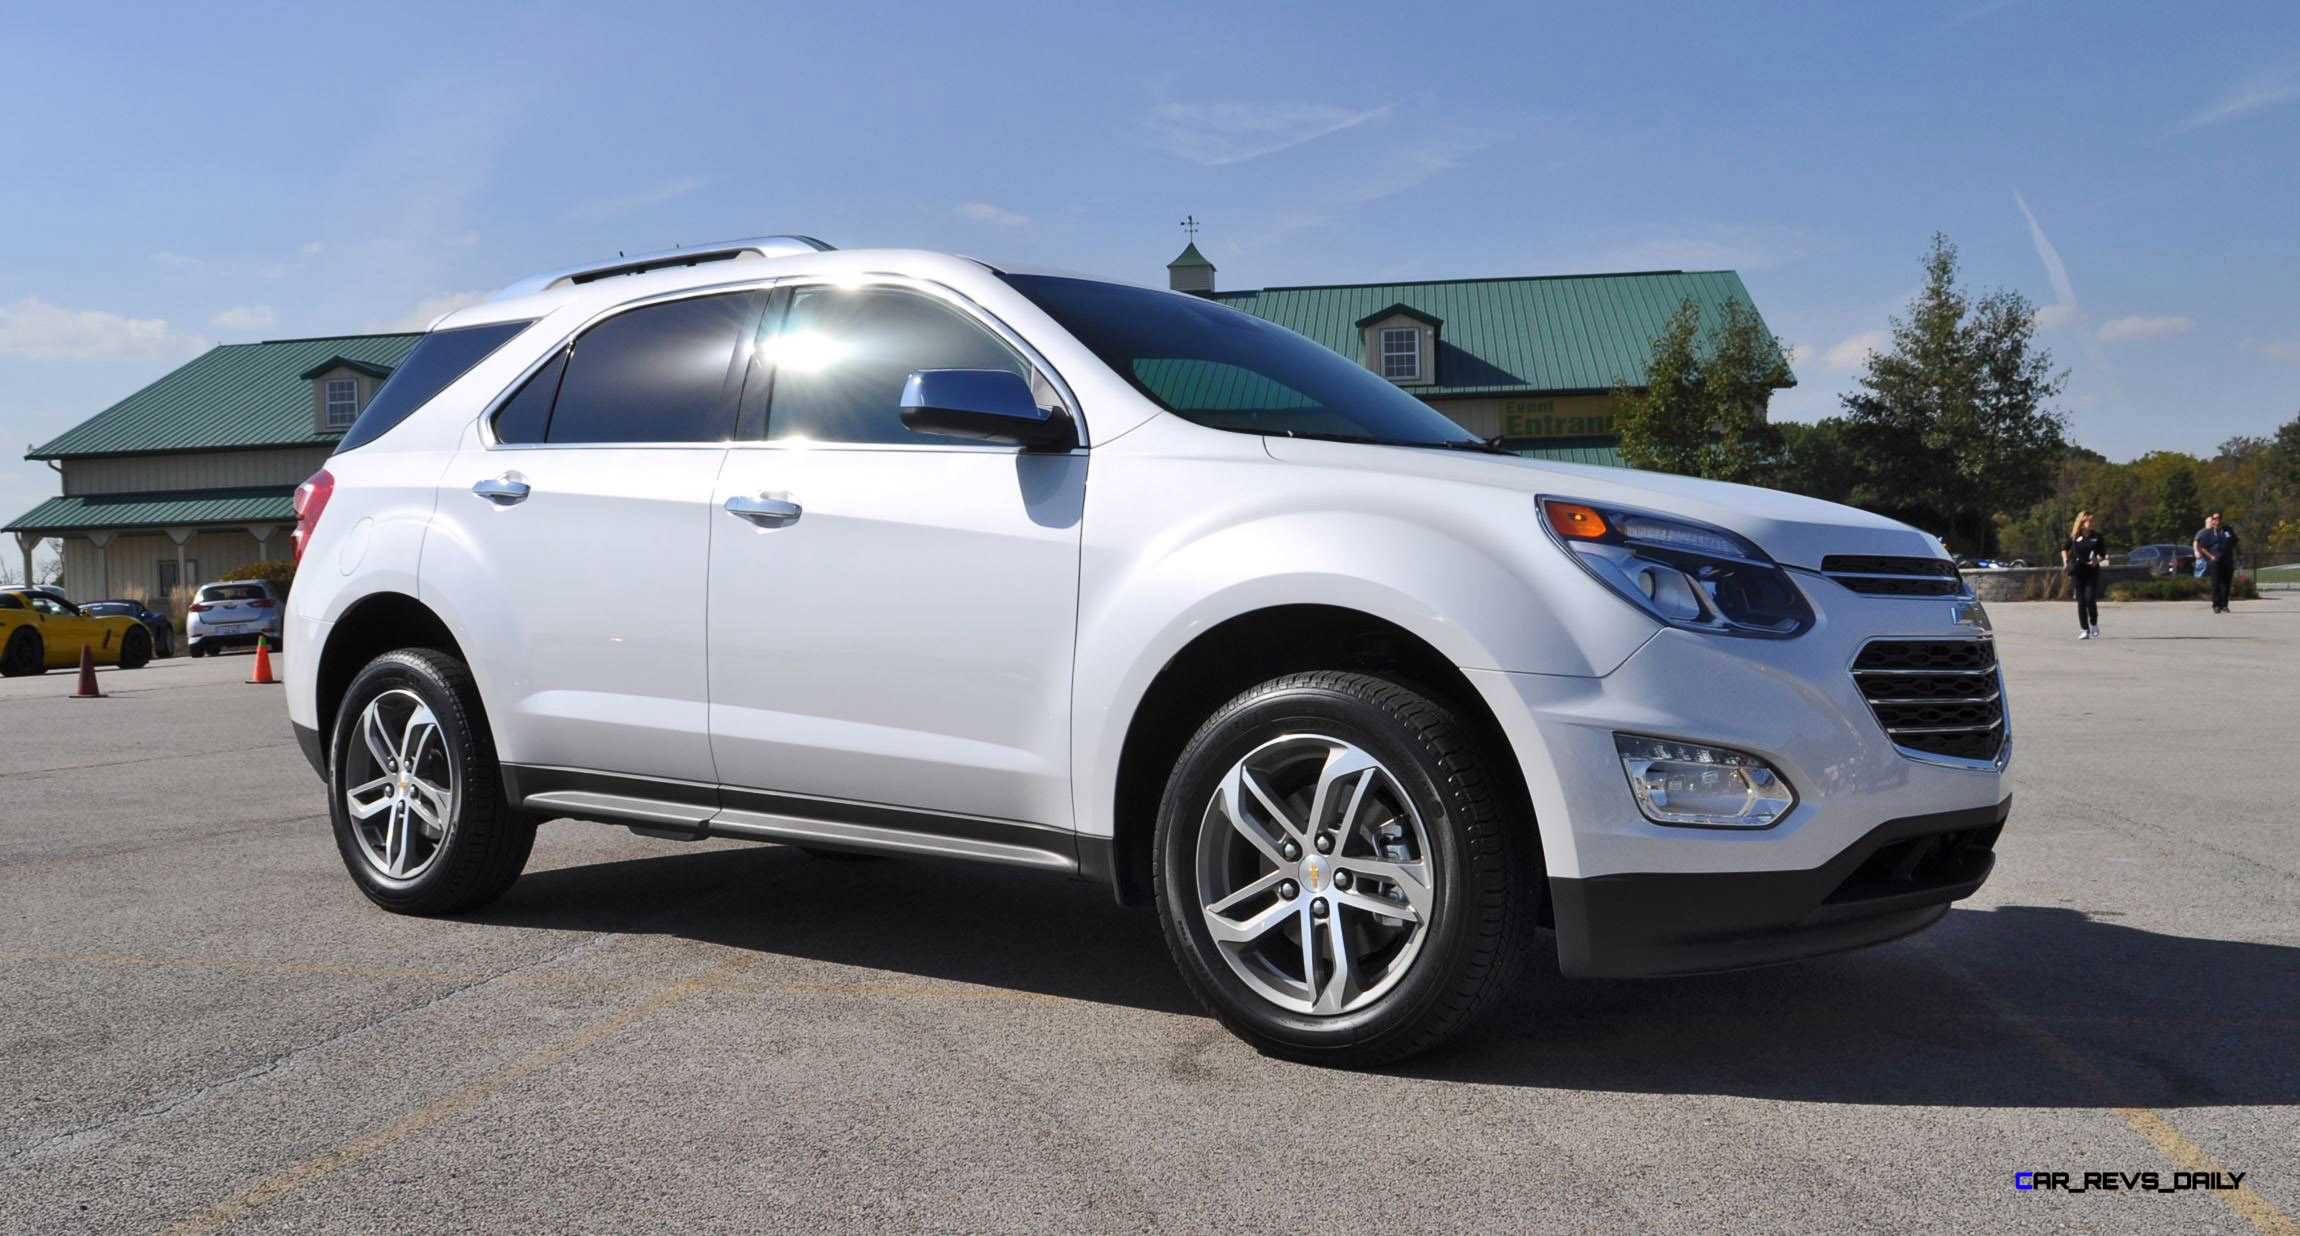 Perfect 2016 Chevrolet EQUINOX  First Look At New LEDs Nose And Interior